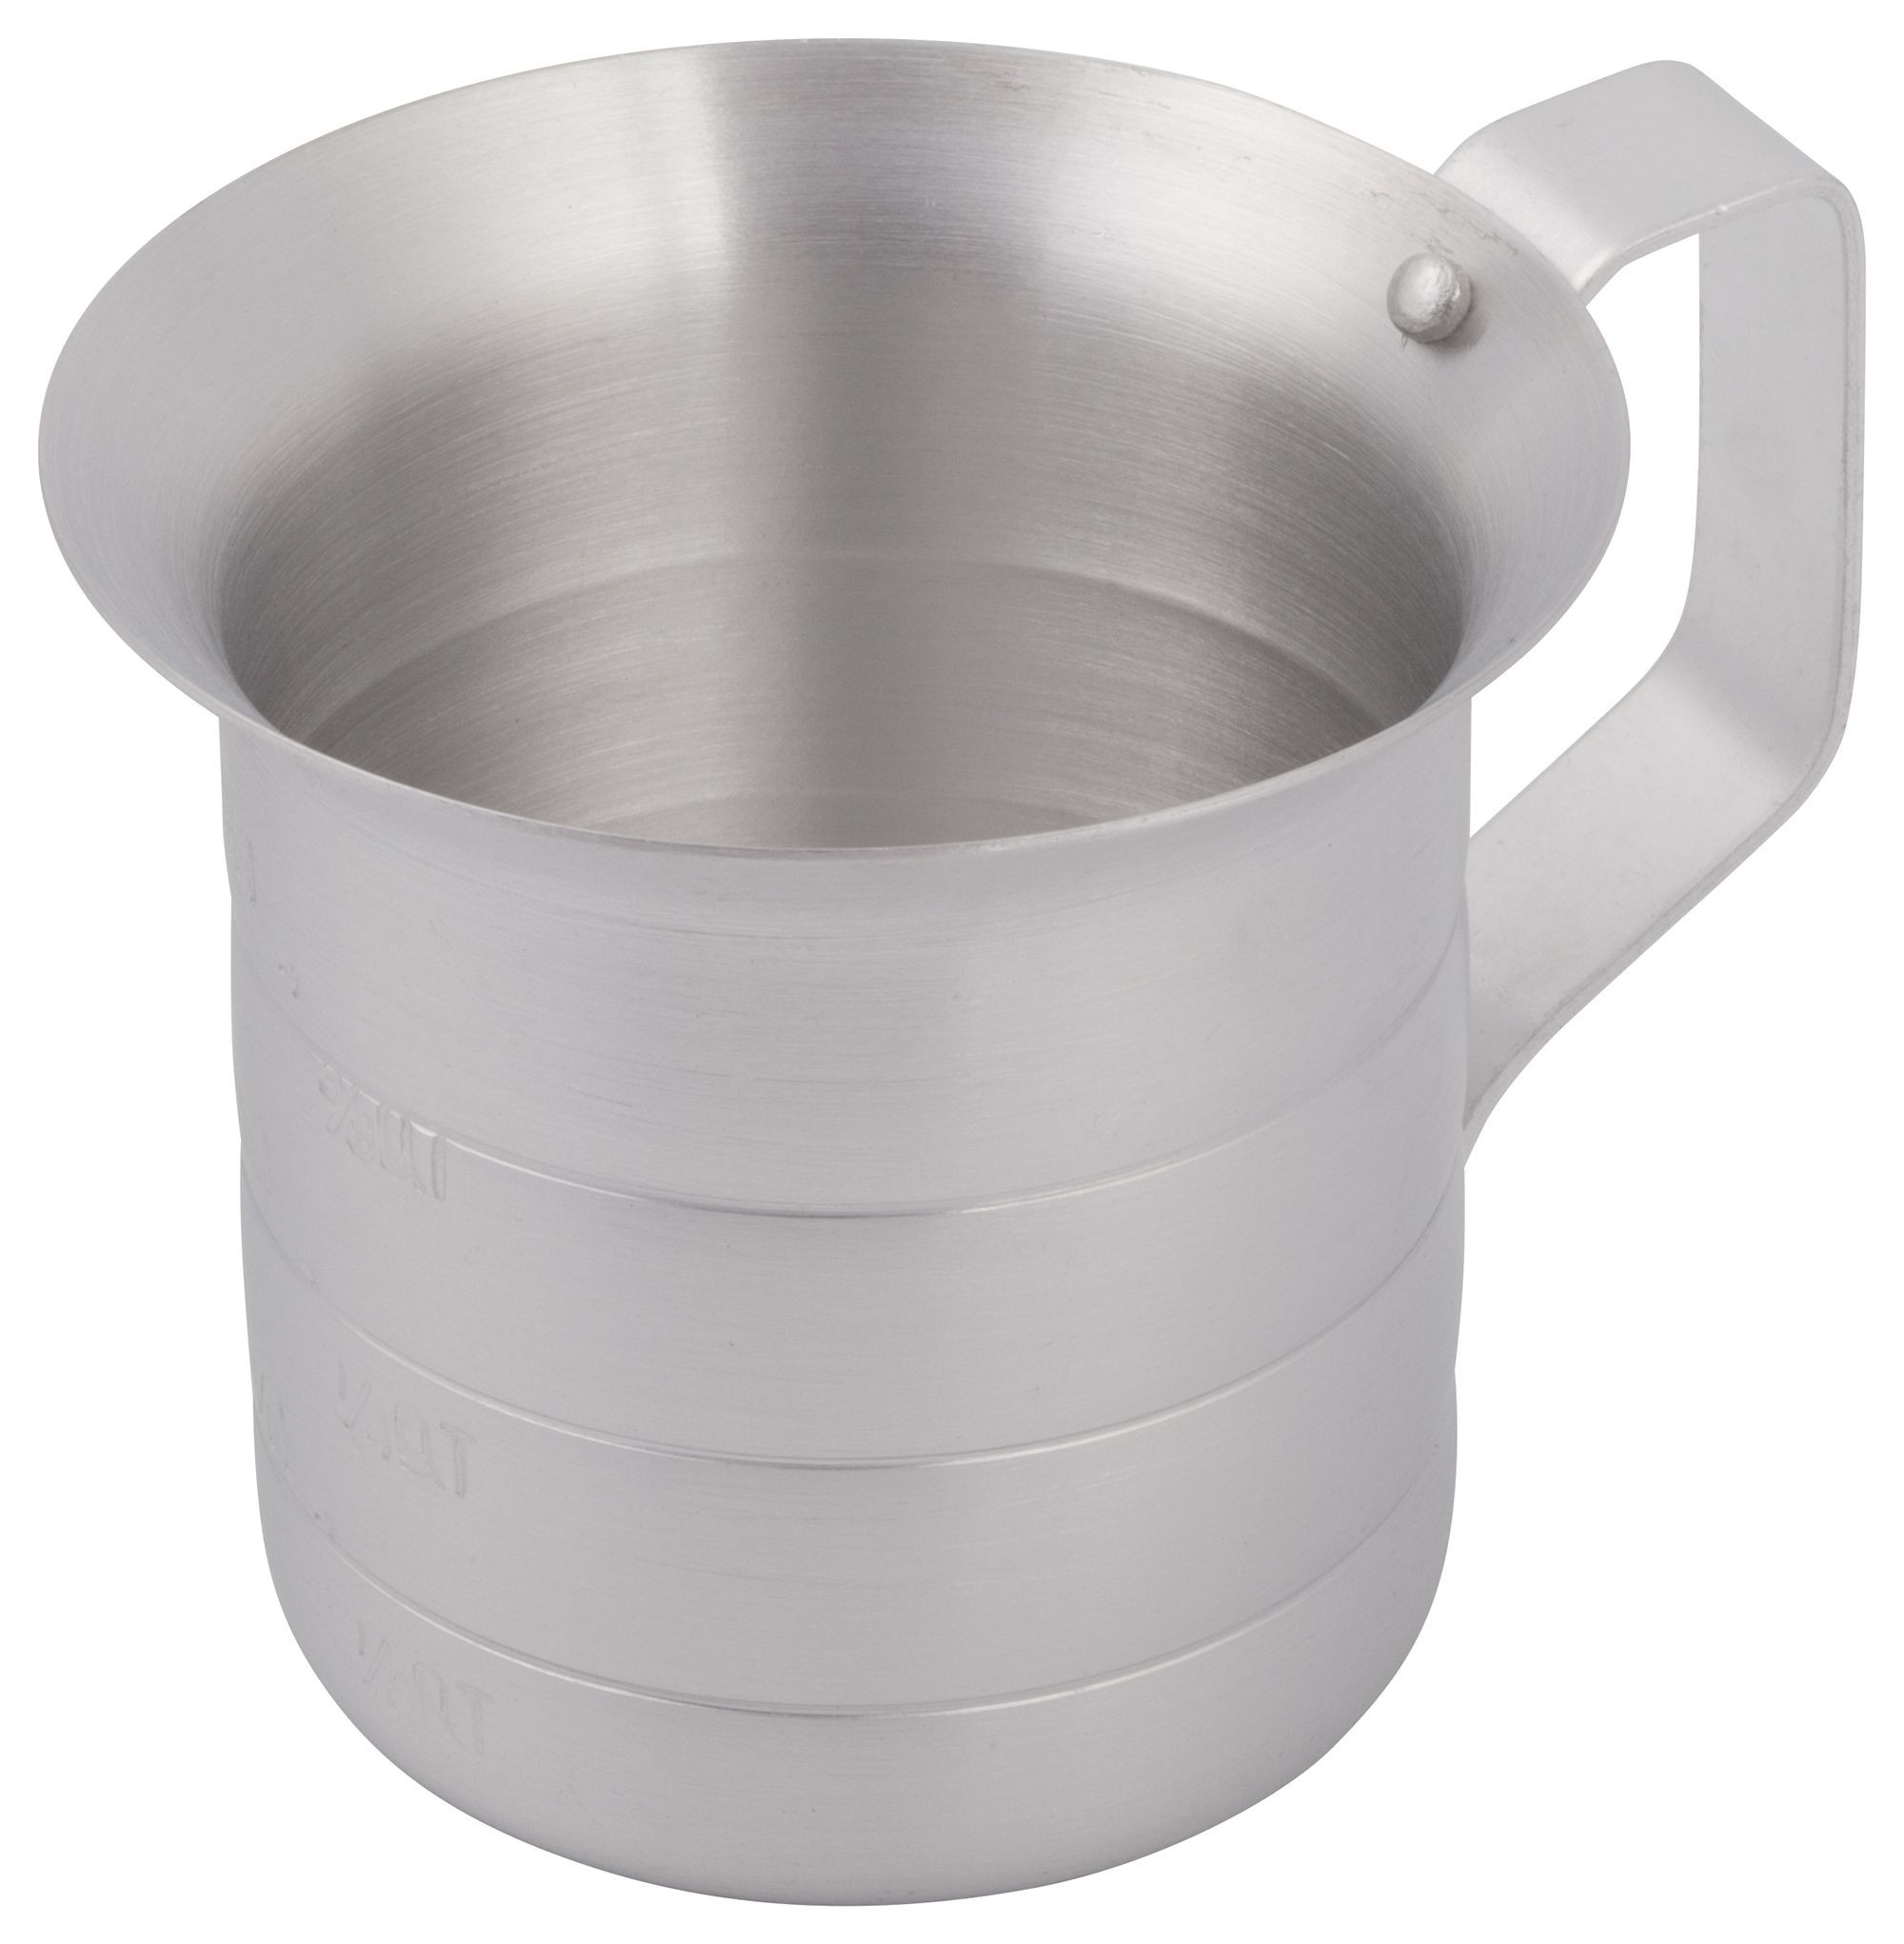 Winco am-05 Aluminum Measuring Cup, 1/2 Qt.